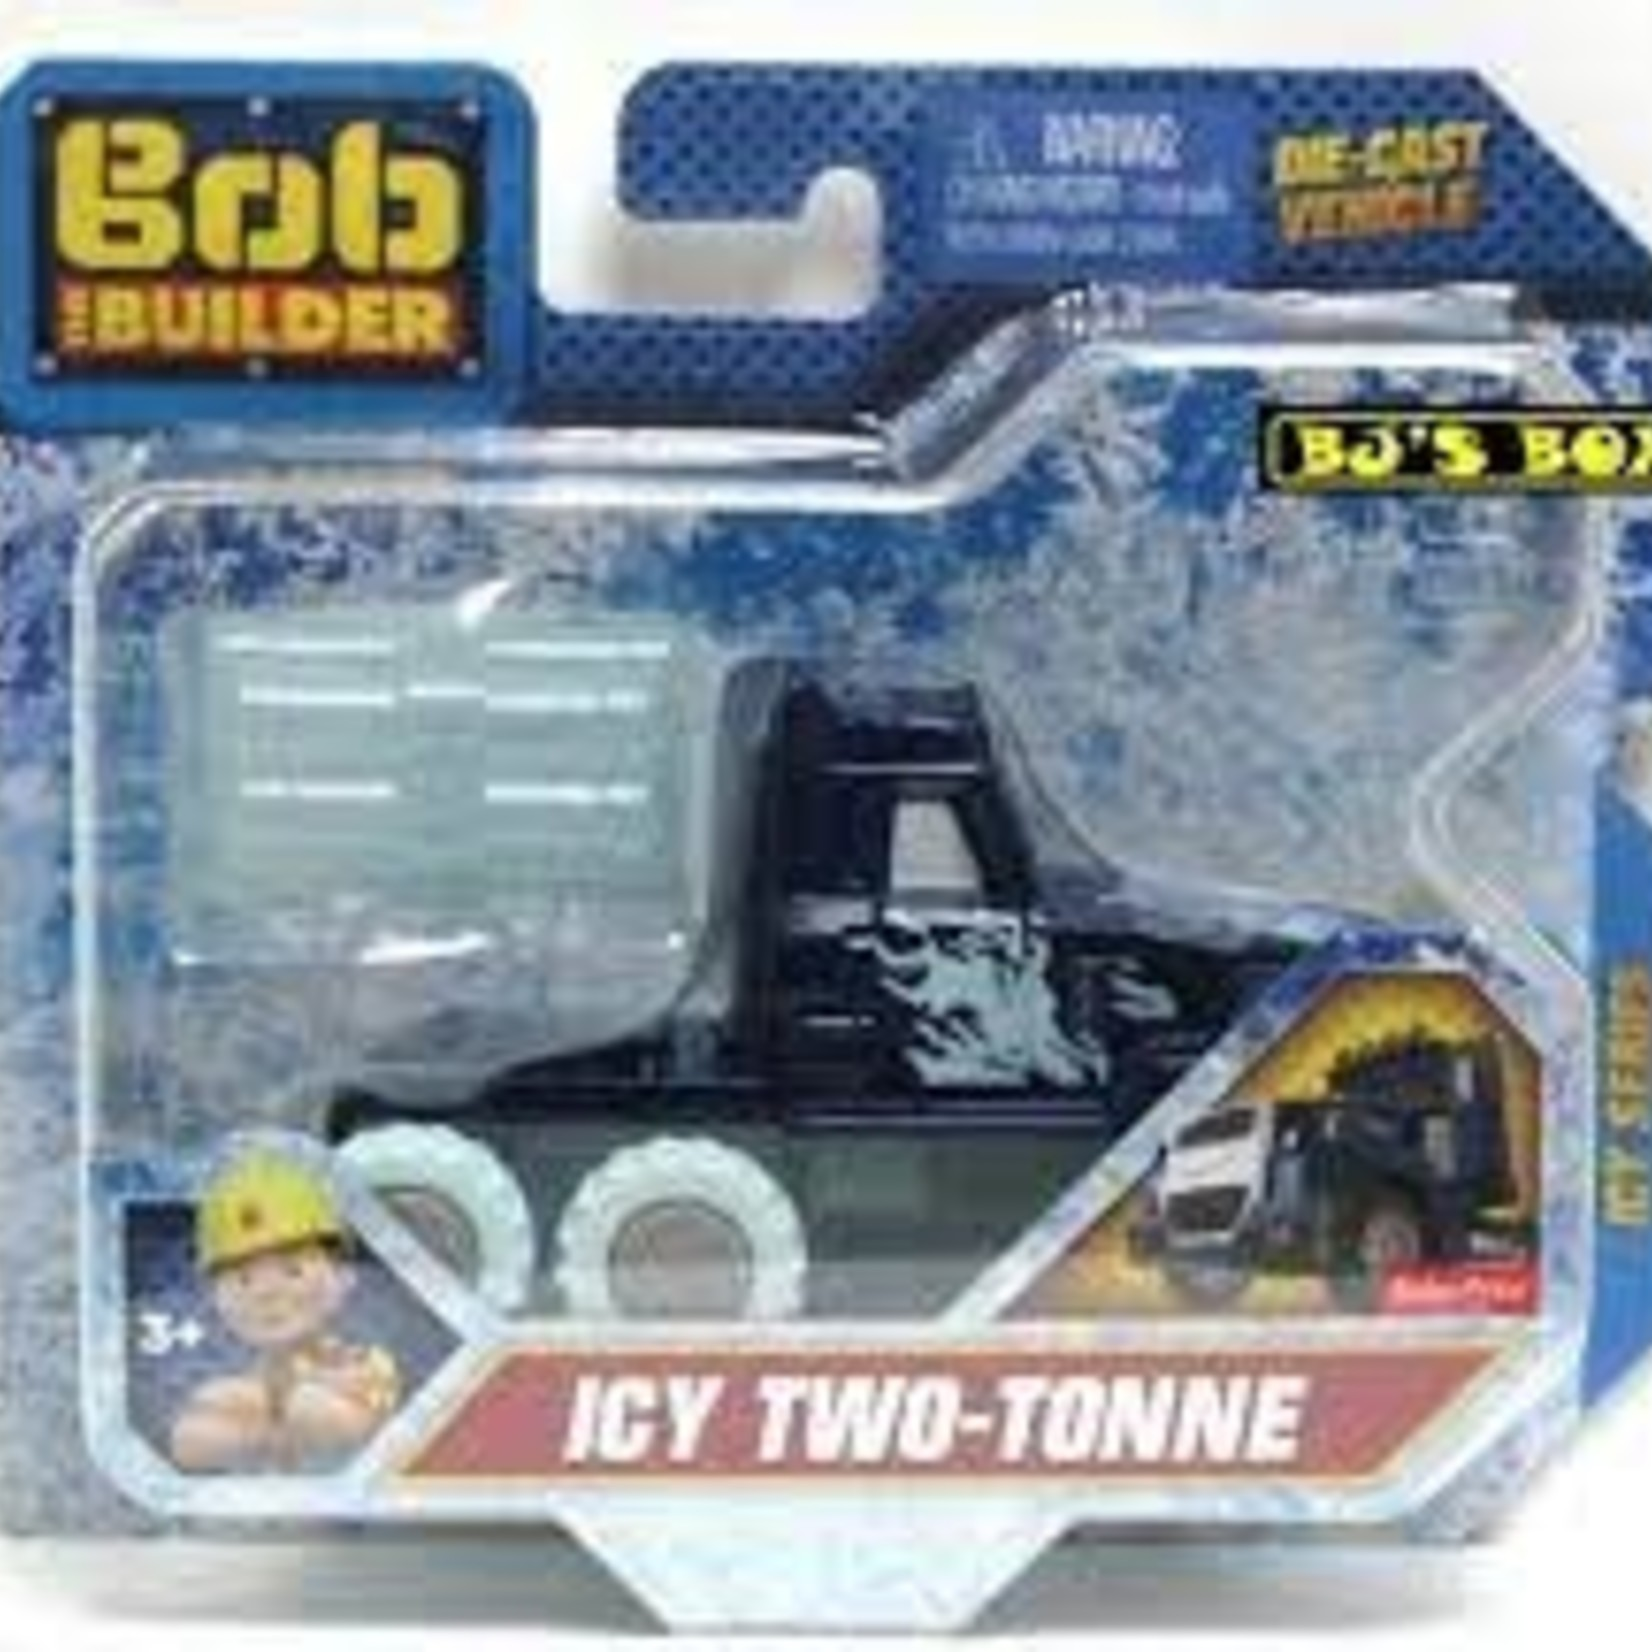 Bob The Builder ICY TWO-TONNE Die-Cast Vehicle Series Tractor